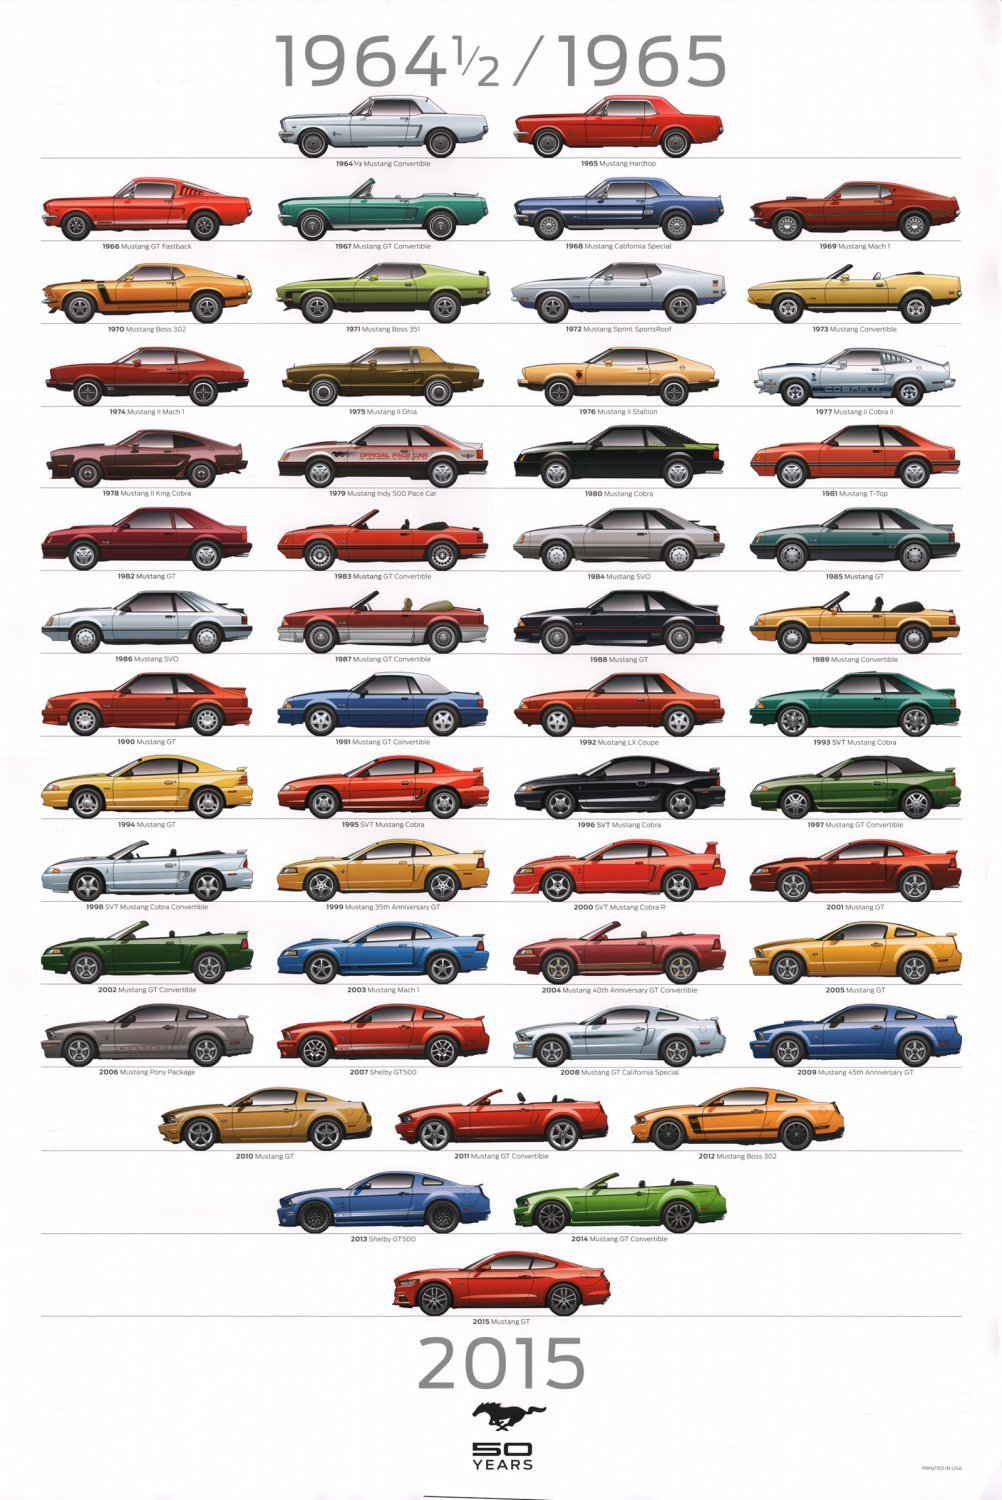 Ford Mustang 50th Anniversary Edition Chart   18x28 inches Poster Print